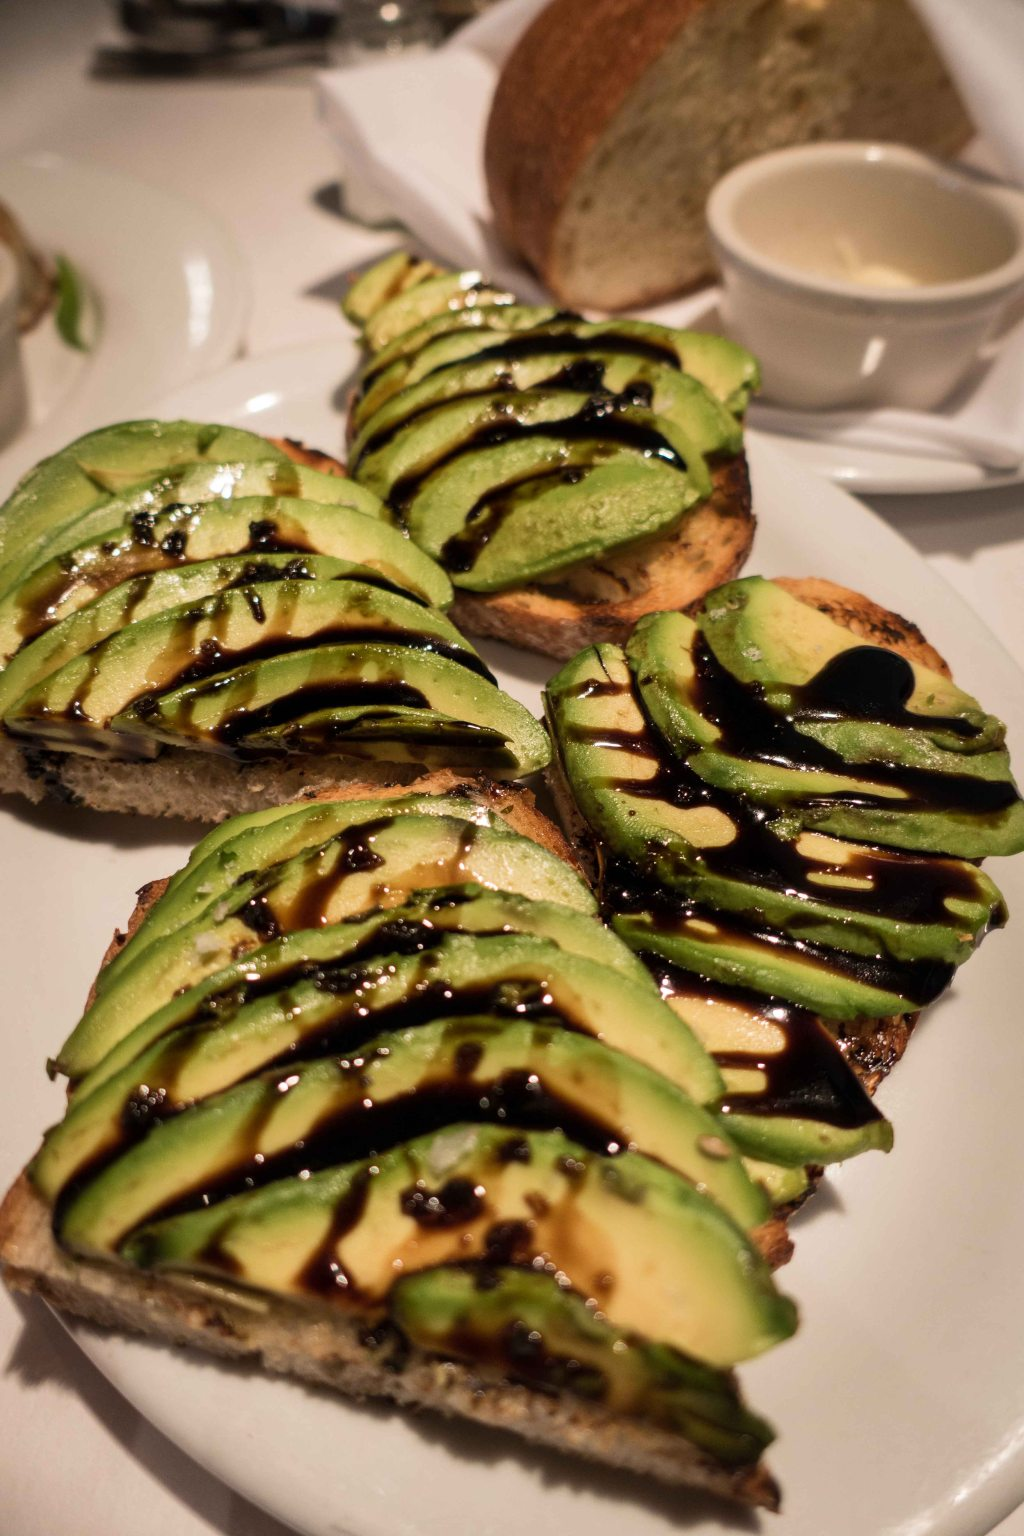 Sliced ripe avocado on toast with balsamic reduction.  Very close to a meal all by itself.